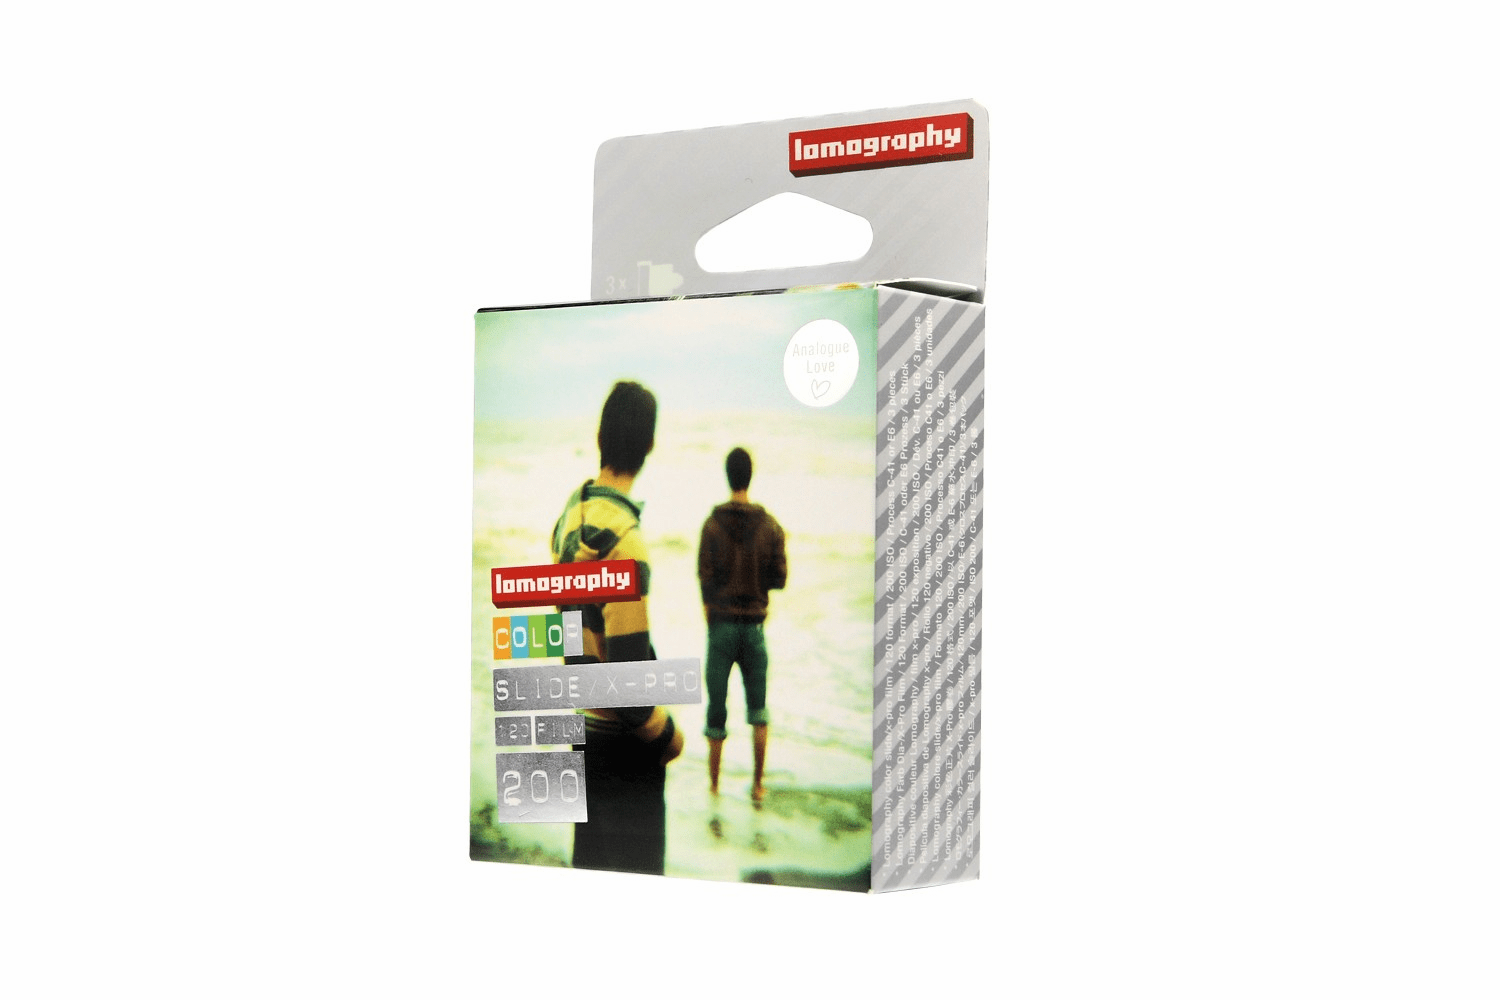 Lomography 120 Format ISO 200 X-Pro Color Slide Film - 3 Pack